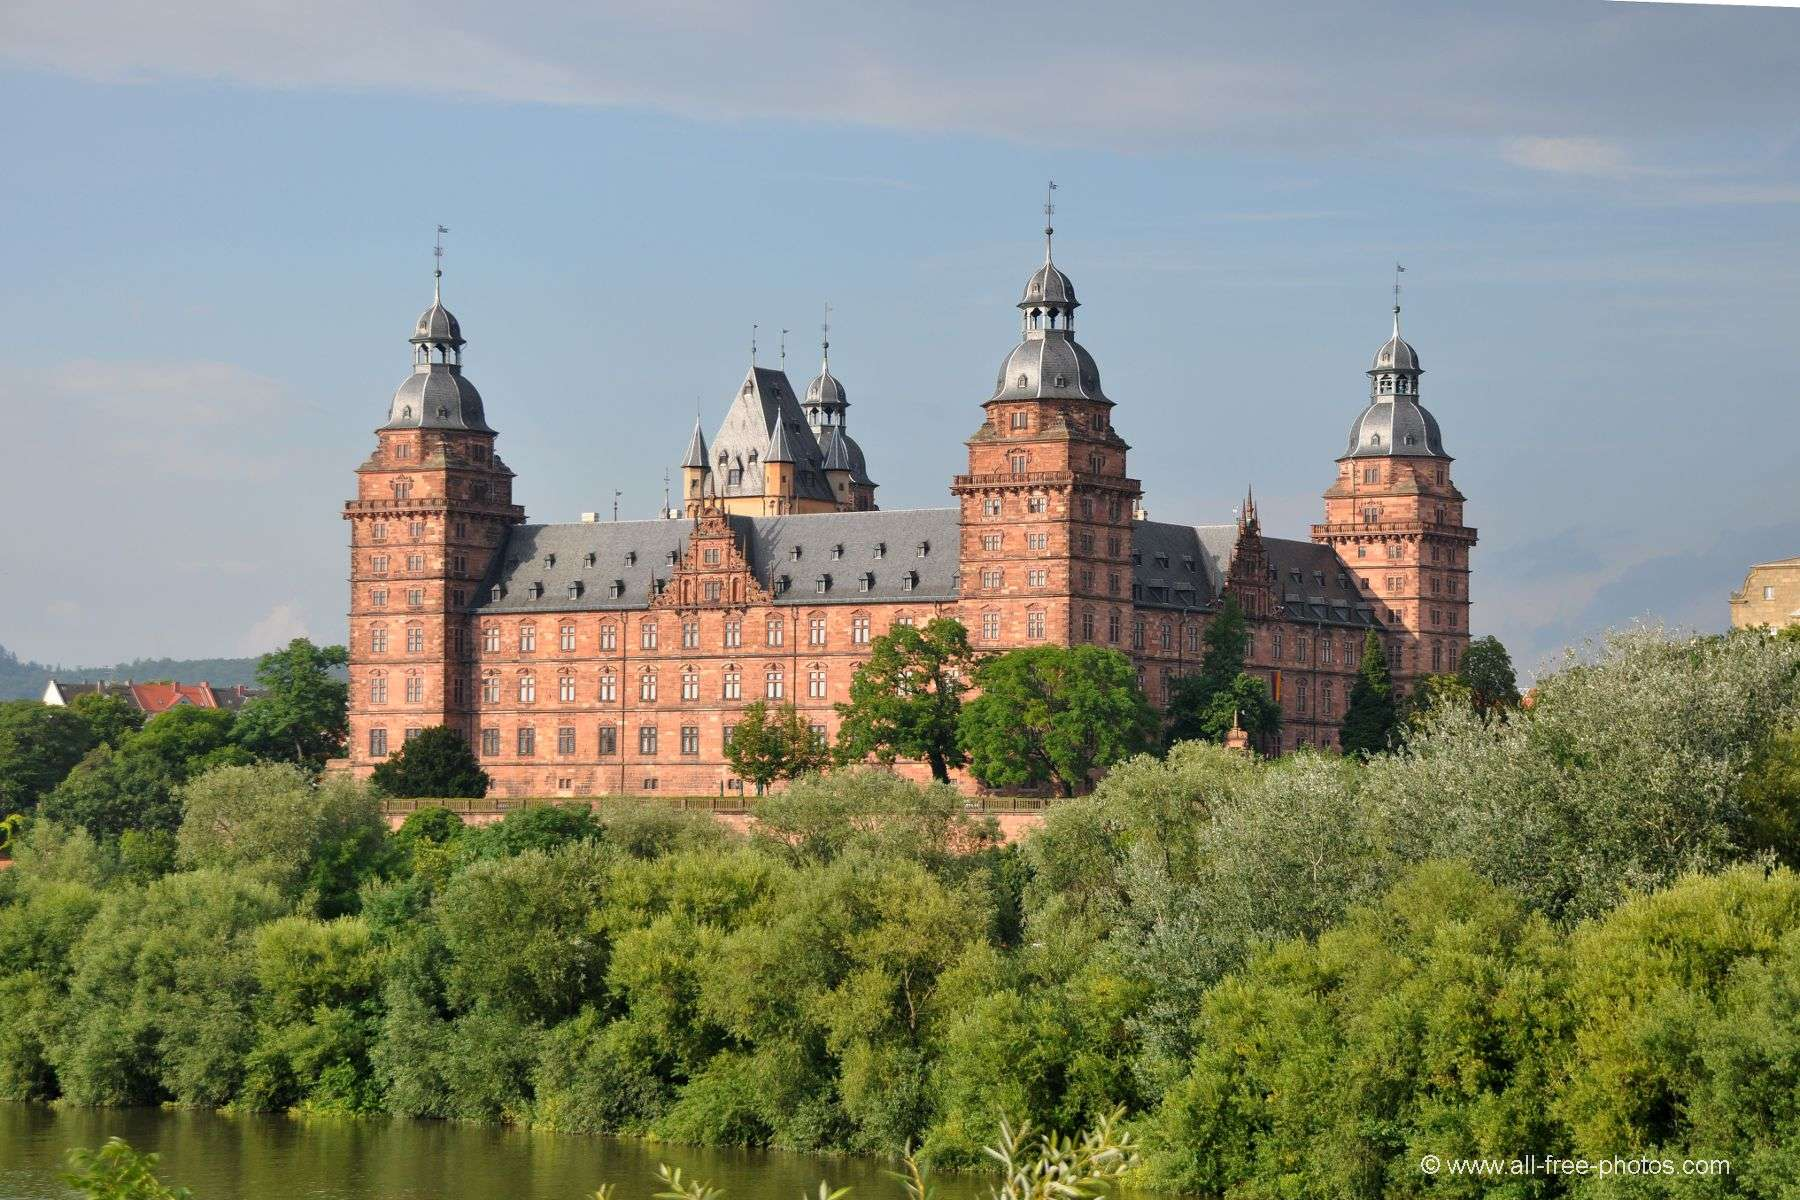 Castle of Aschaffenburg - Germany